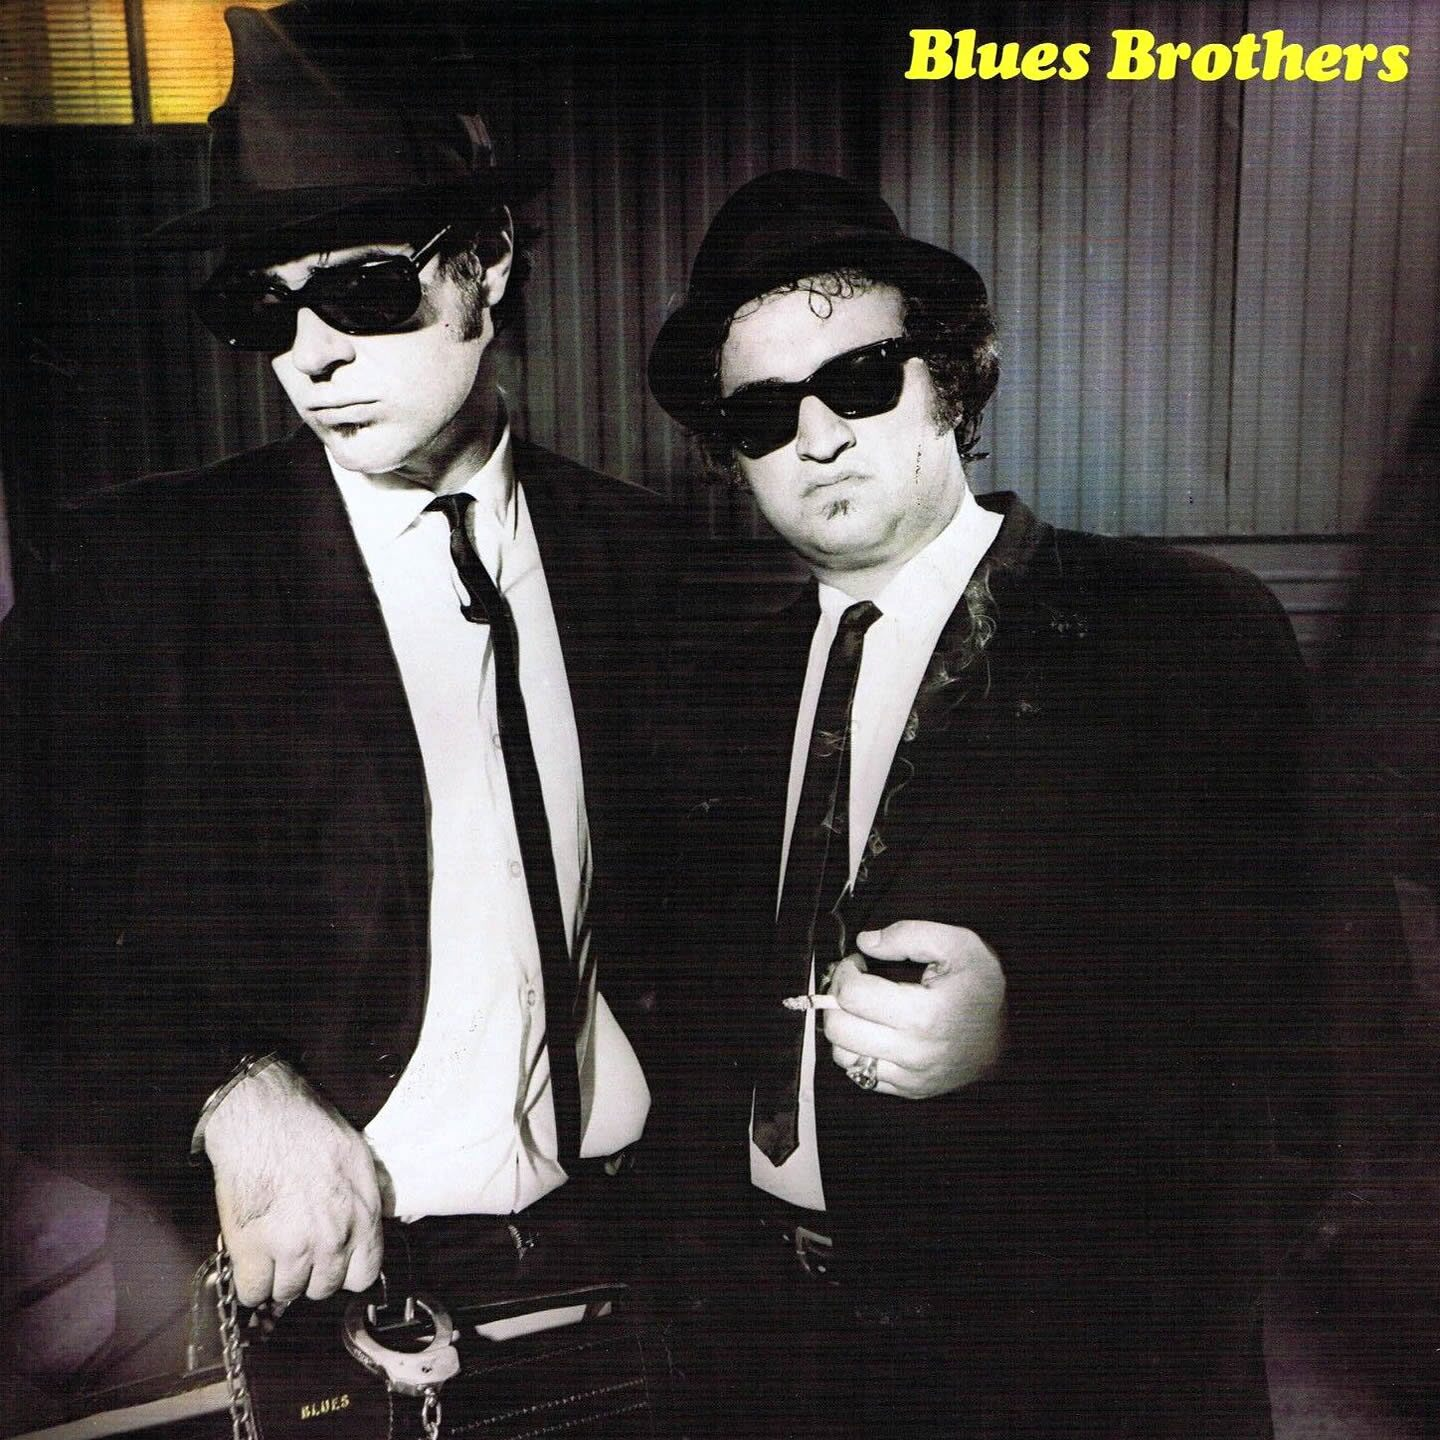 The Blues Brothers act proved so popular they began performing live shows and released an album in 1978.